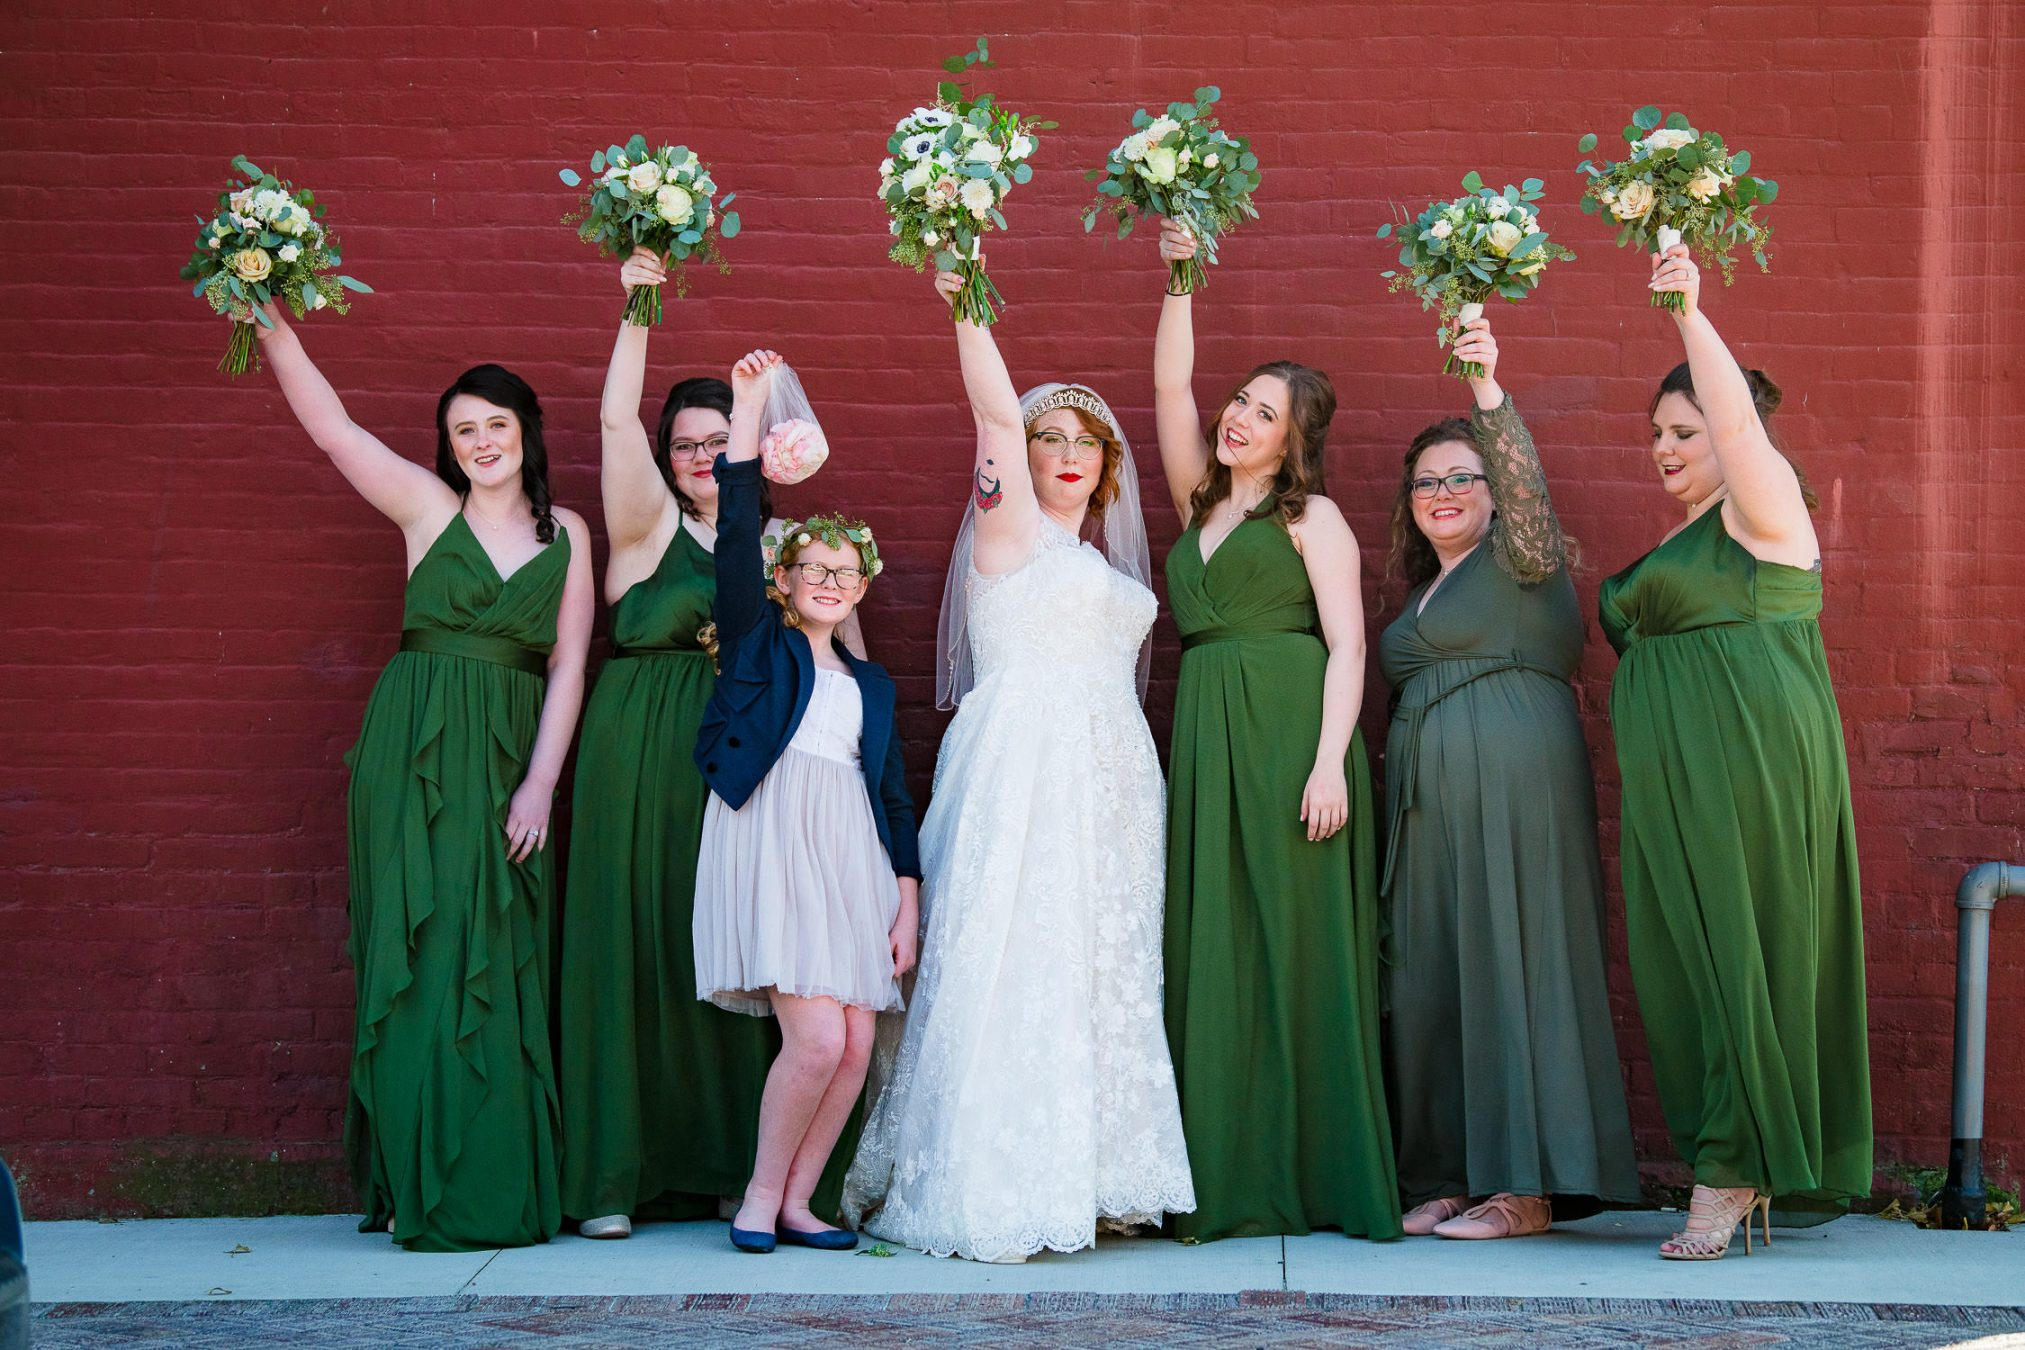 bride and bridesmaids with flower bouquets